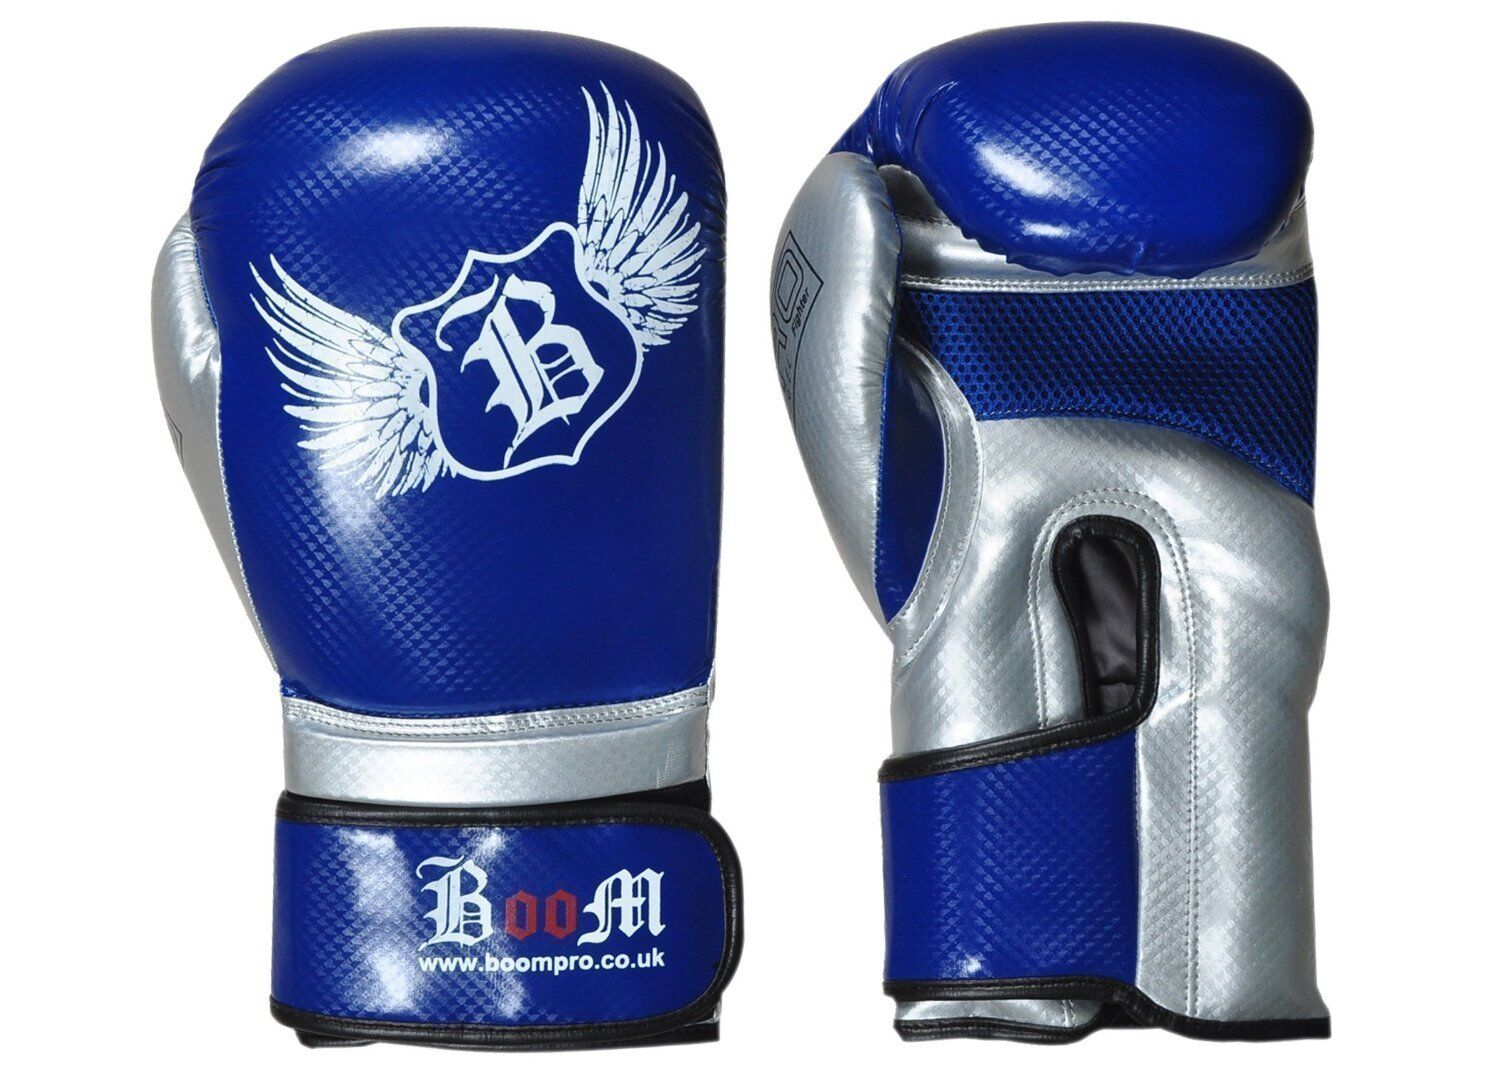 bluee  & silver Maya Leder Boxhandschuhe Sparring Mma Muay Thai Bbox Training  online discount